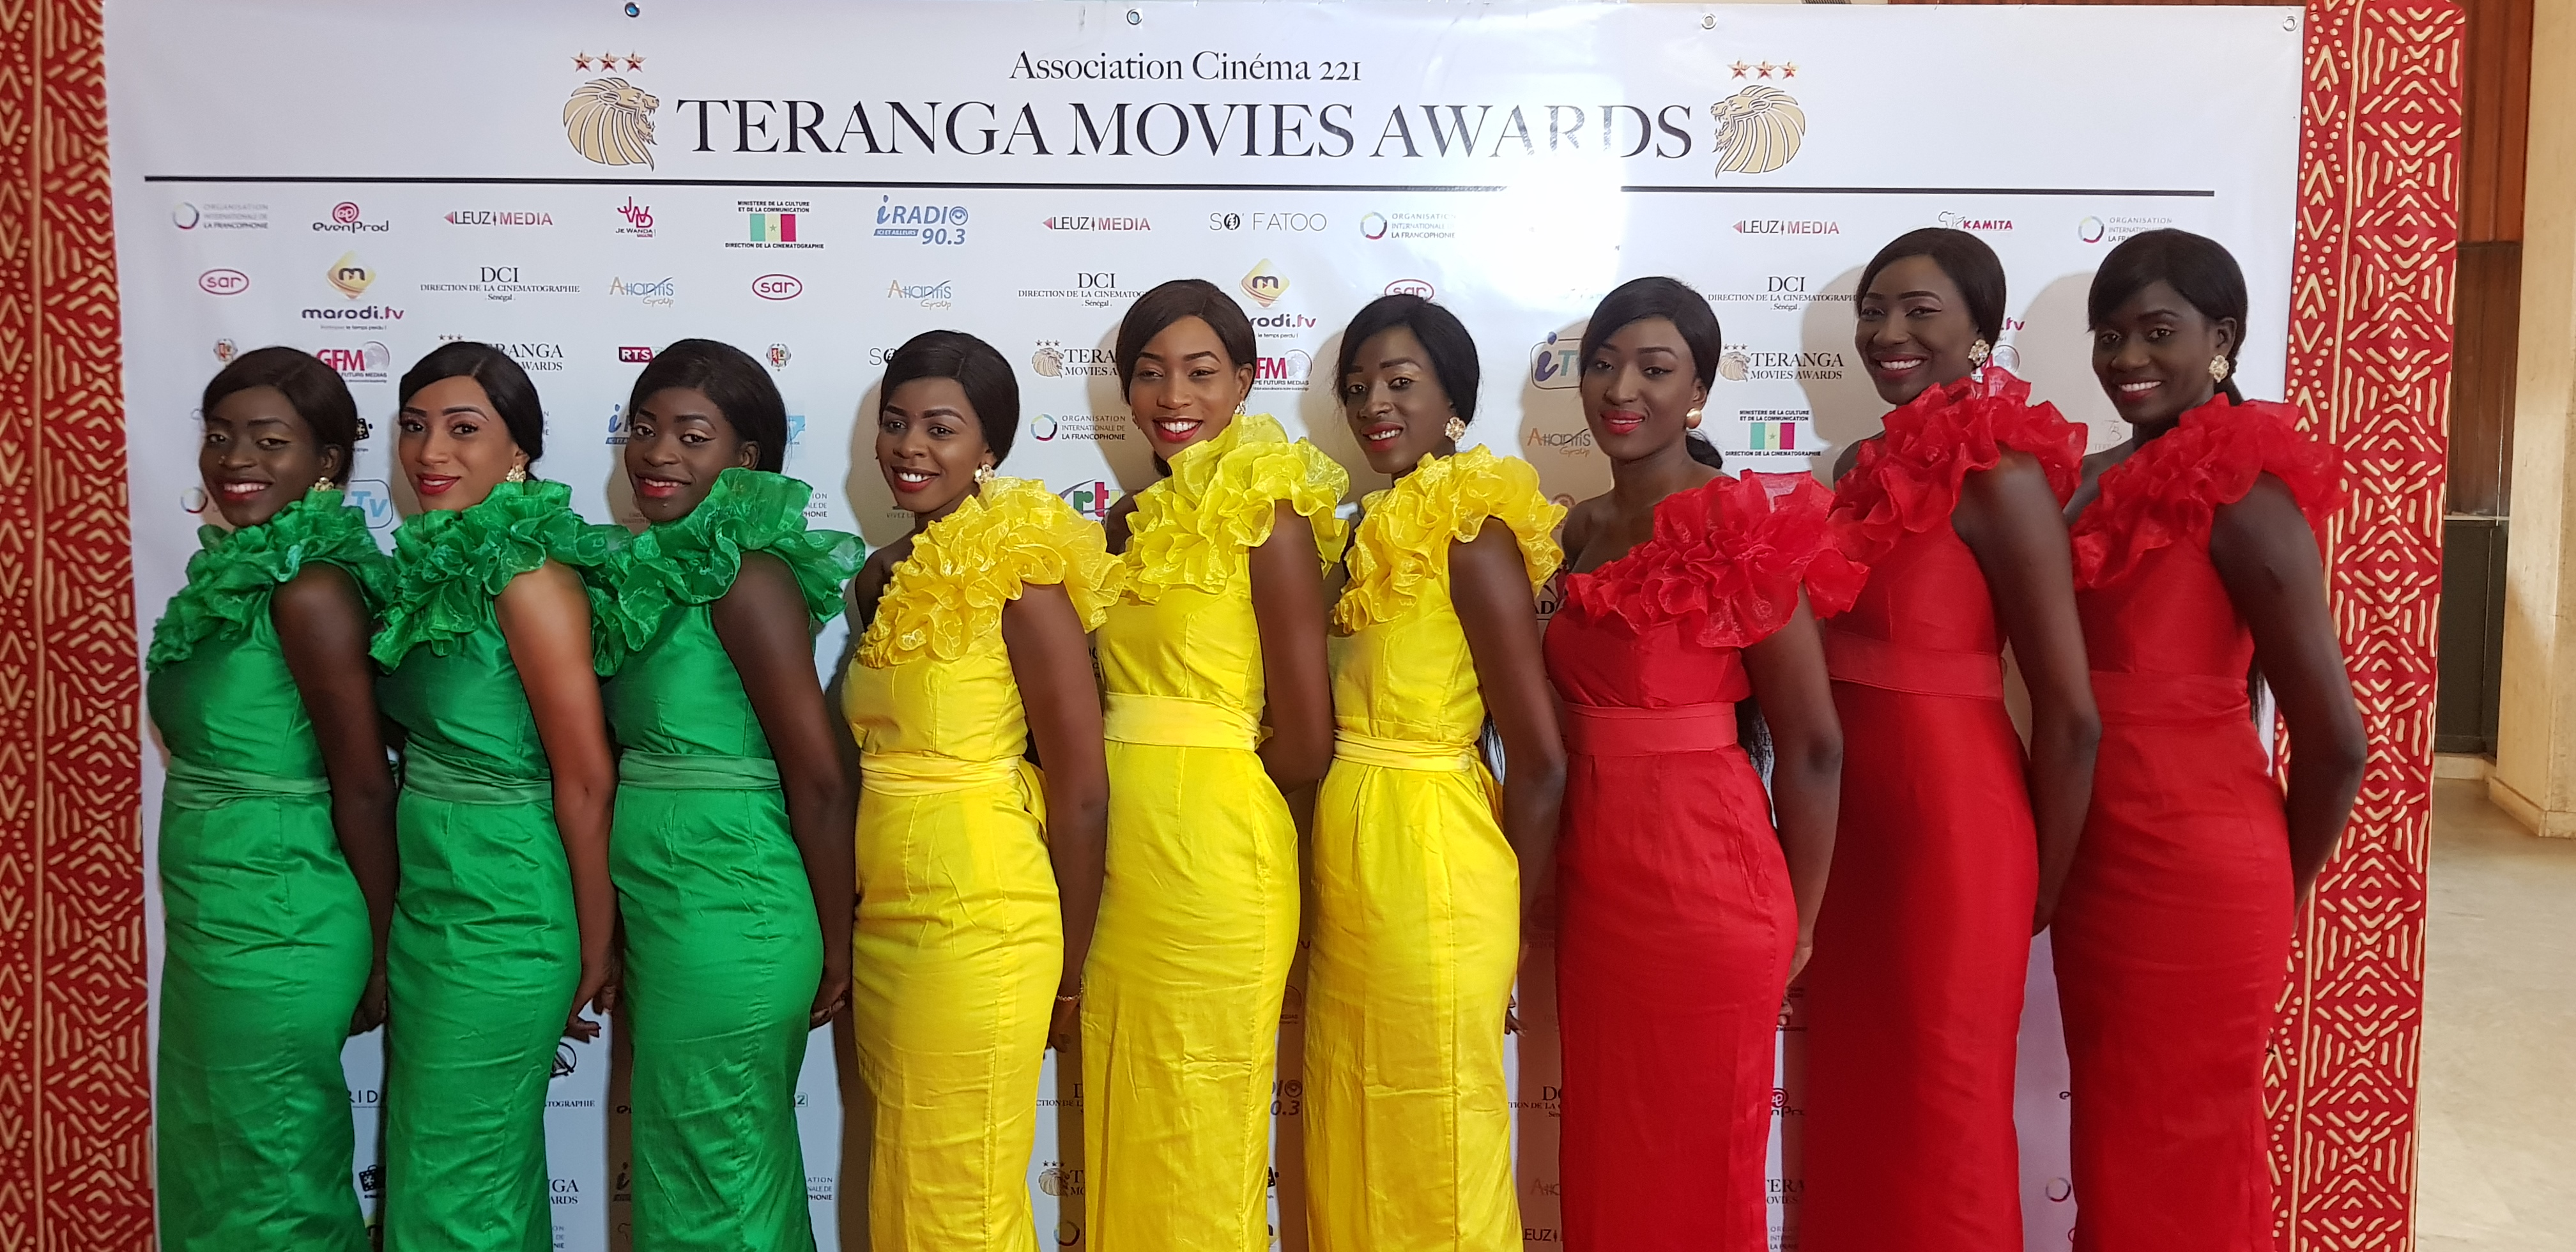 Teranga Movies Awards - 1ère édition